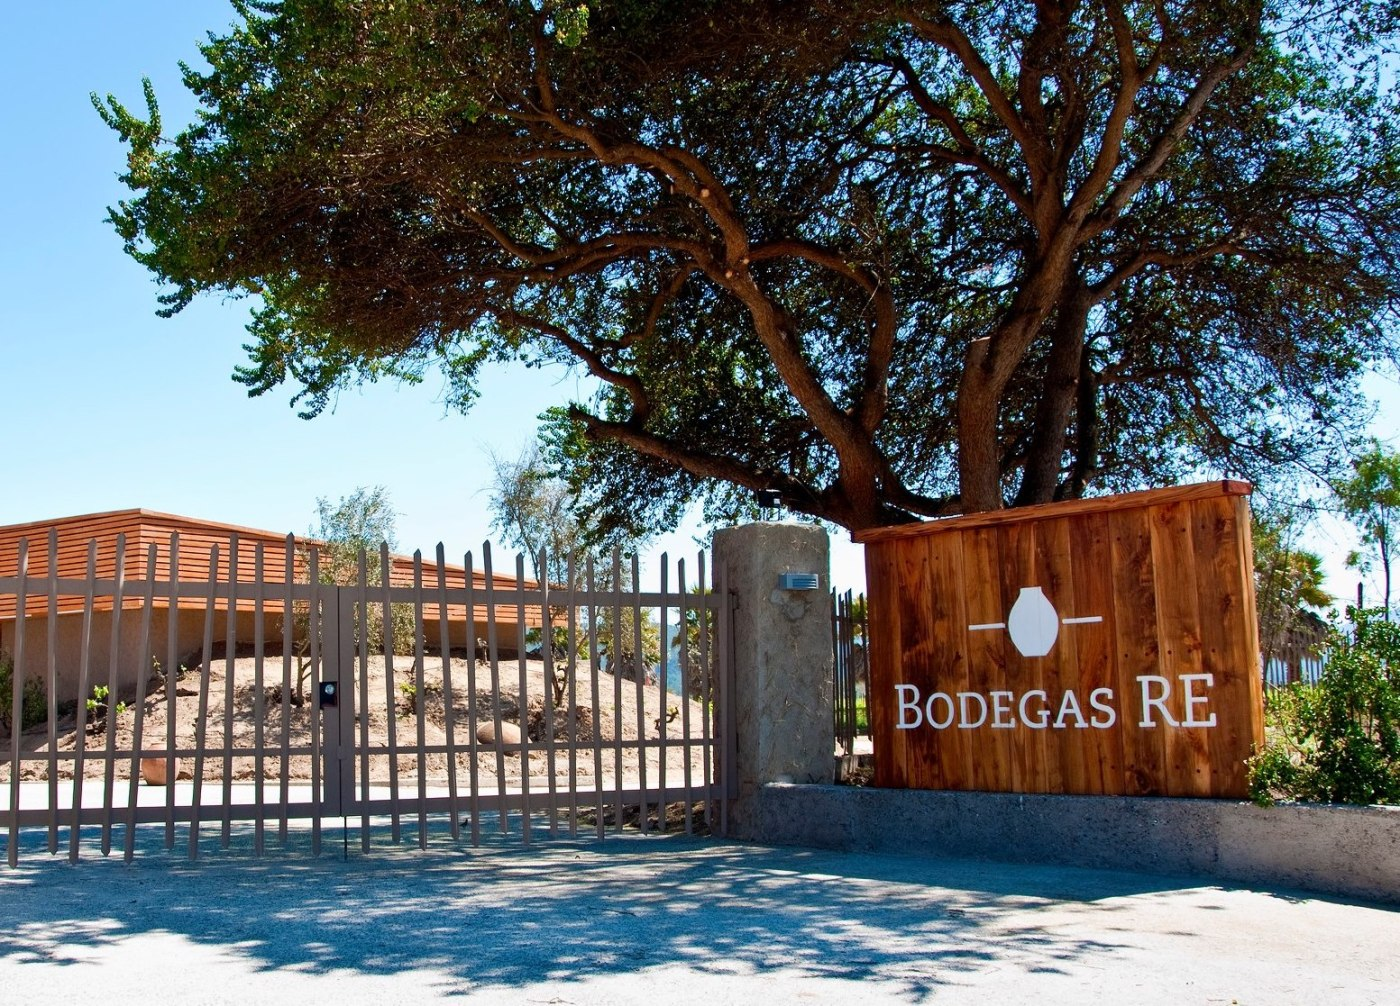 Bodegas RE winery guide: Your guide to South American wineries & wines